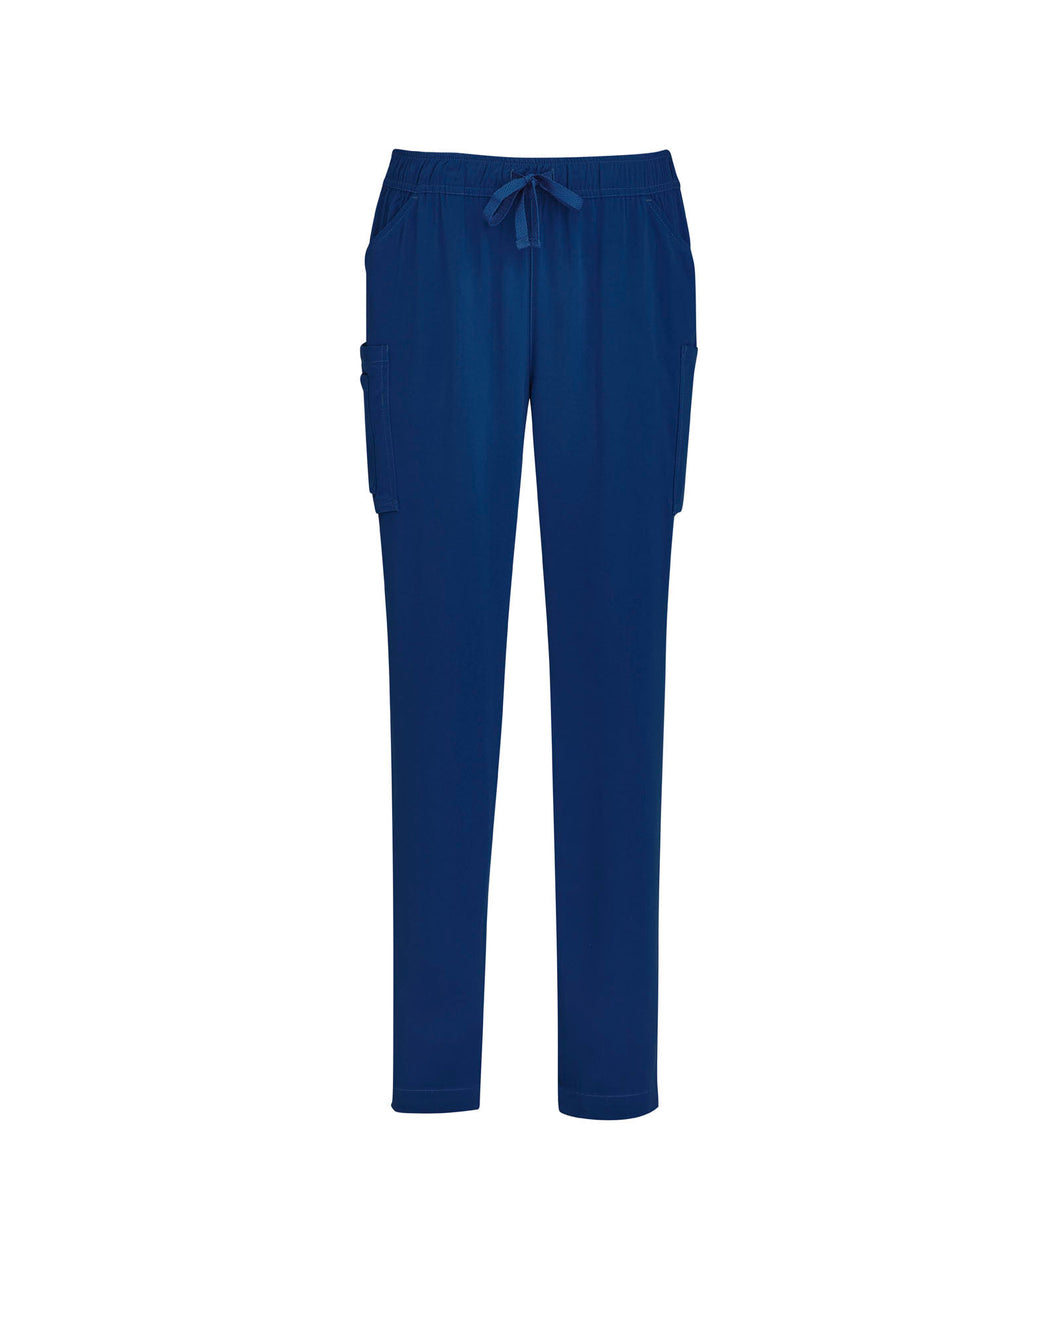 Women's Navy Slim Leg Scrub Pants